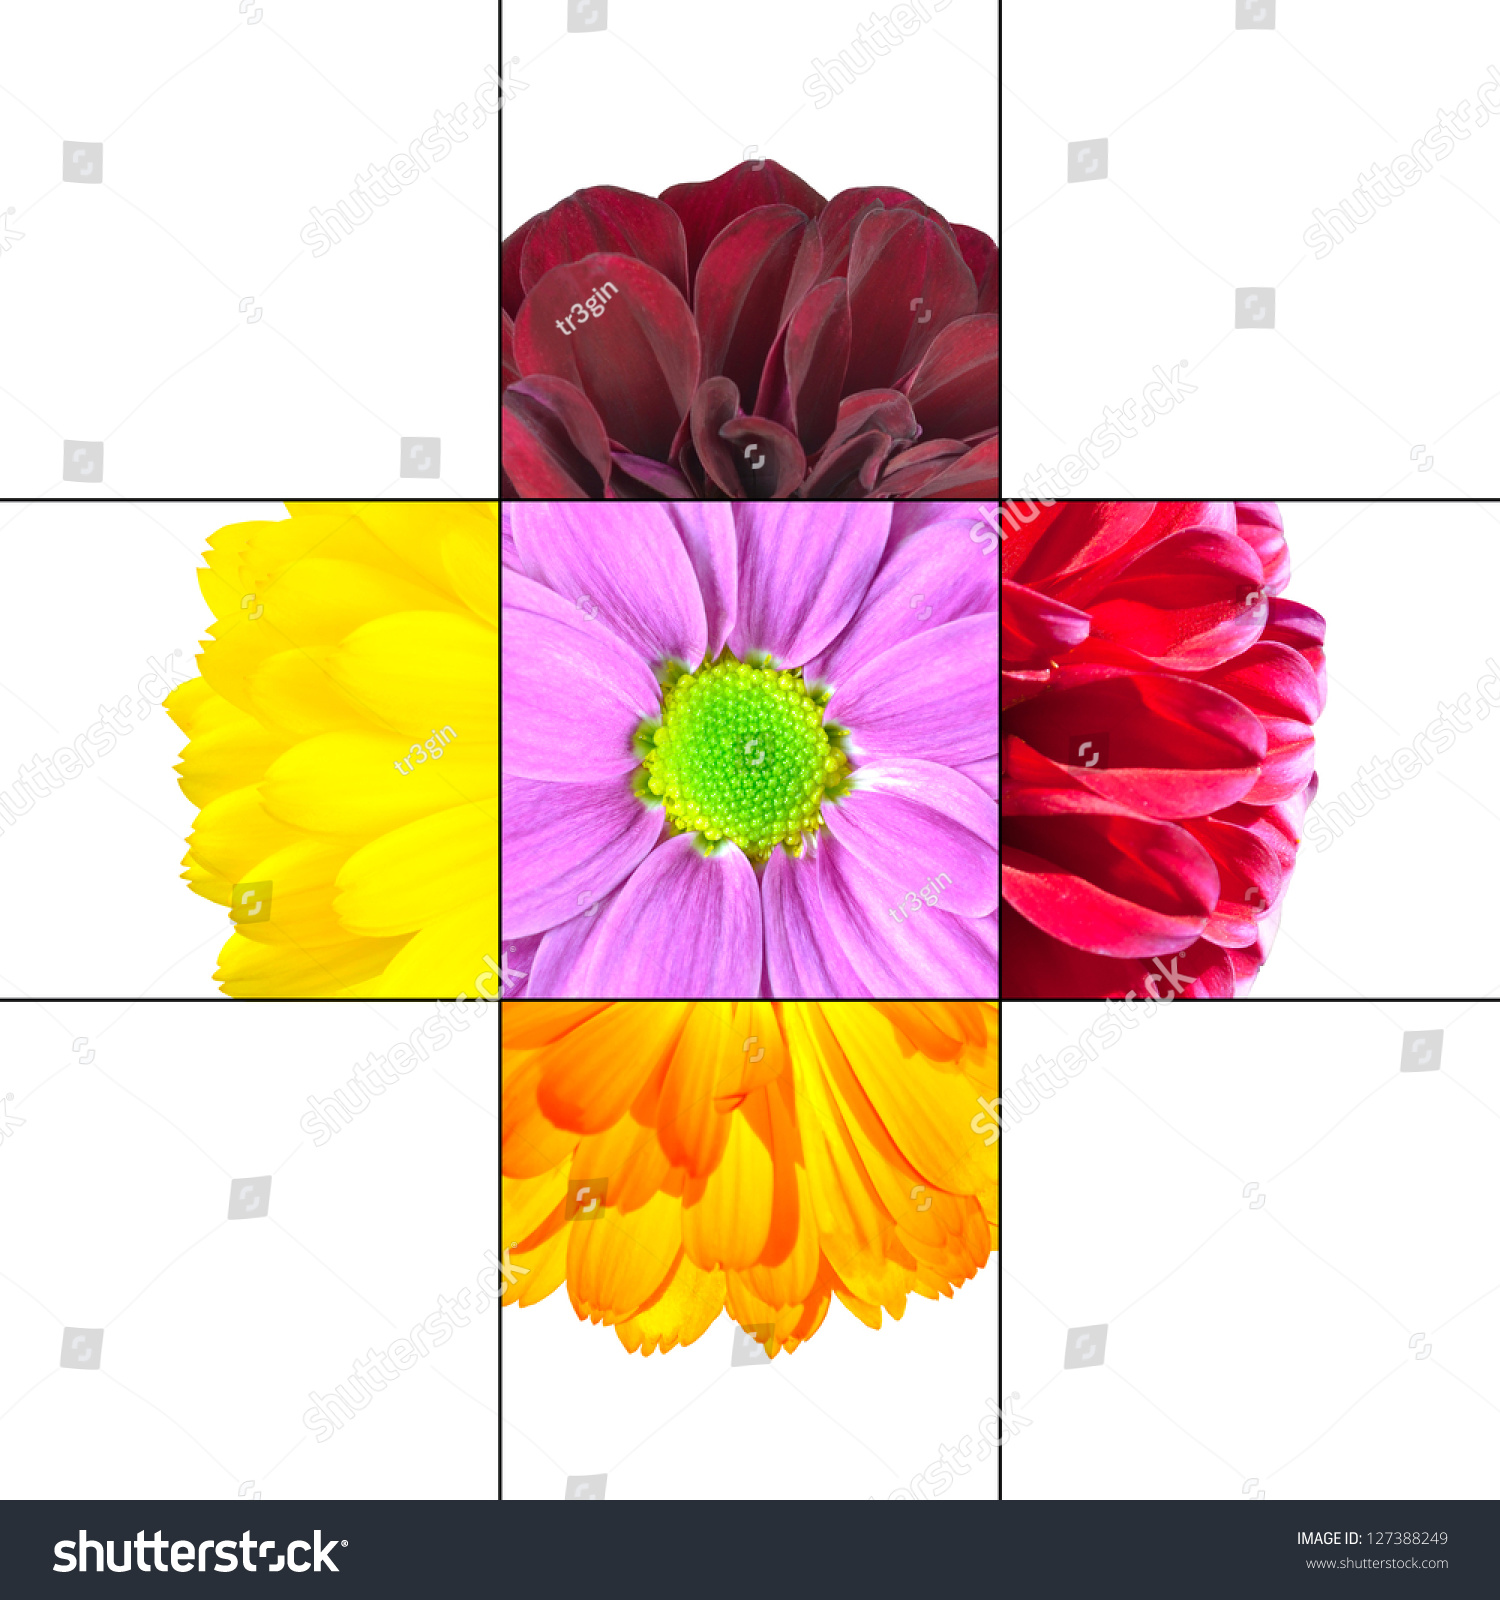 Royalty free colorful daisy flower mosaic design 127388249 stock colorful daisy flower mosaic design which is consisting of 9 squares on 3x3 grid with parts izmirmasajfo